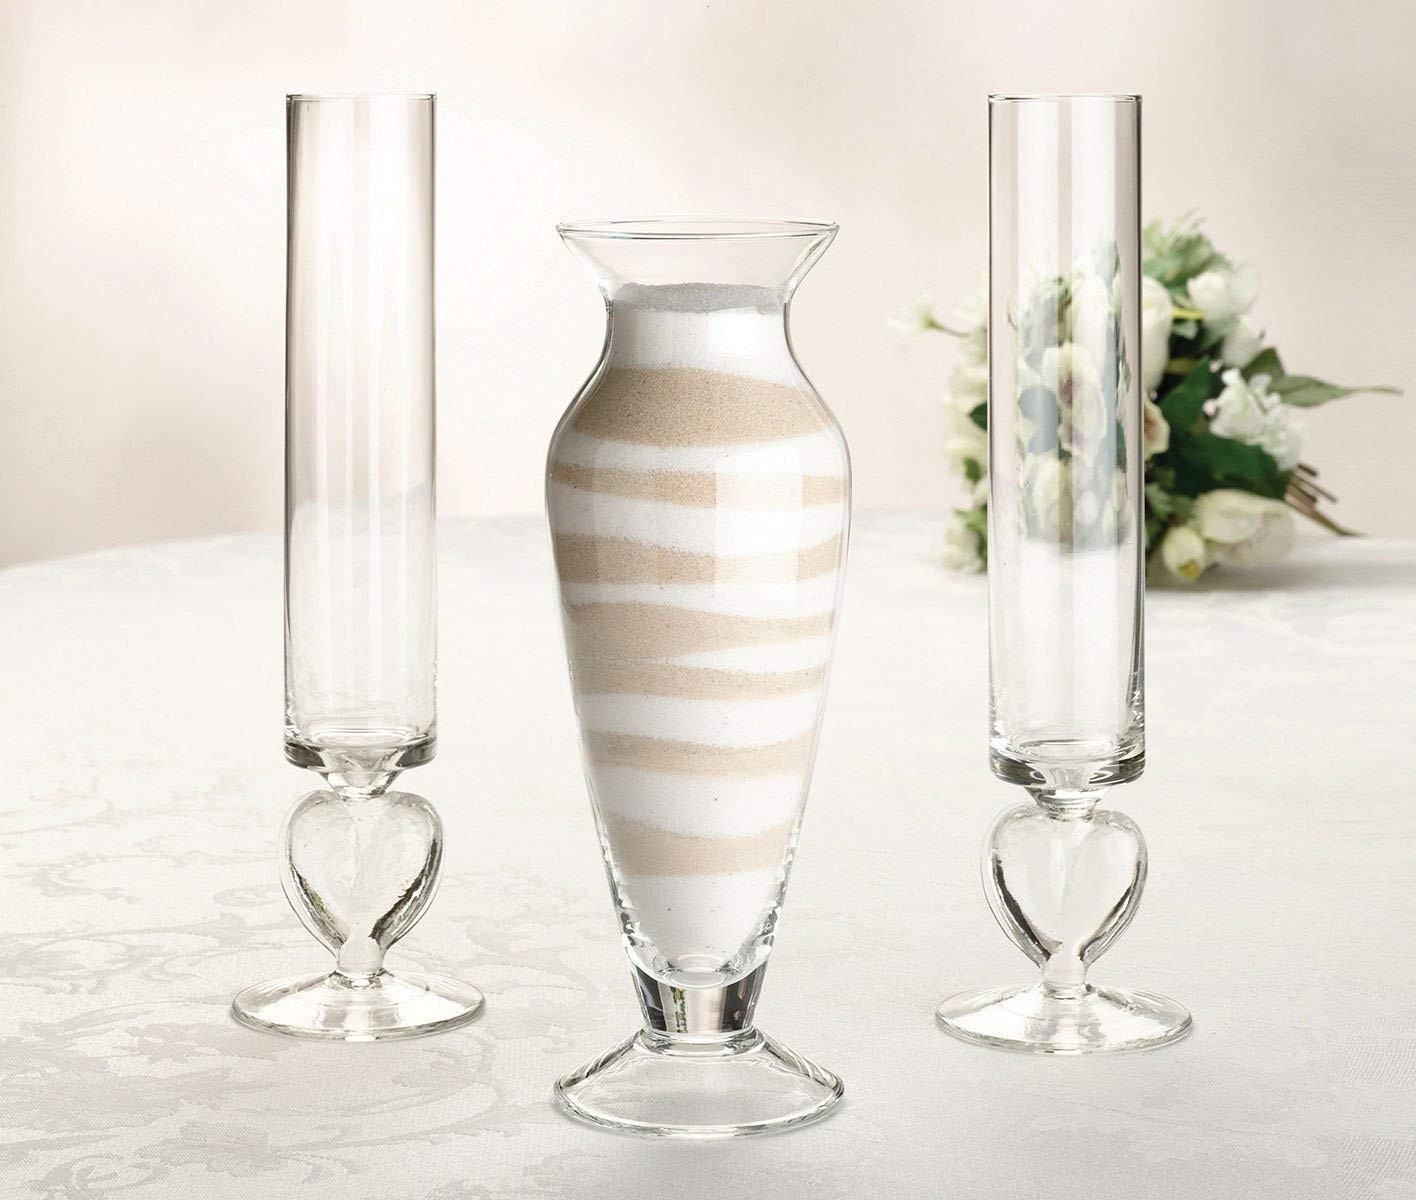 glass heart vase sand ceremony set of amazon com lillian rose unity sand ceremony wedding vase set home pertaining to amazon com lillian rose unity sand ceremony wedding vase set home kitche